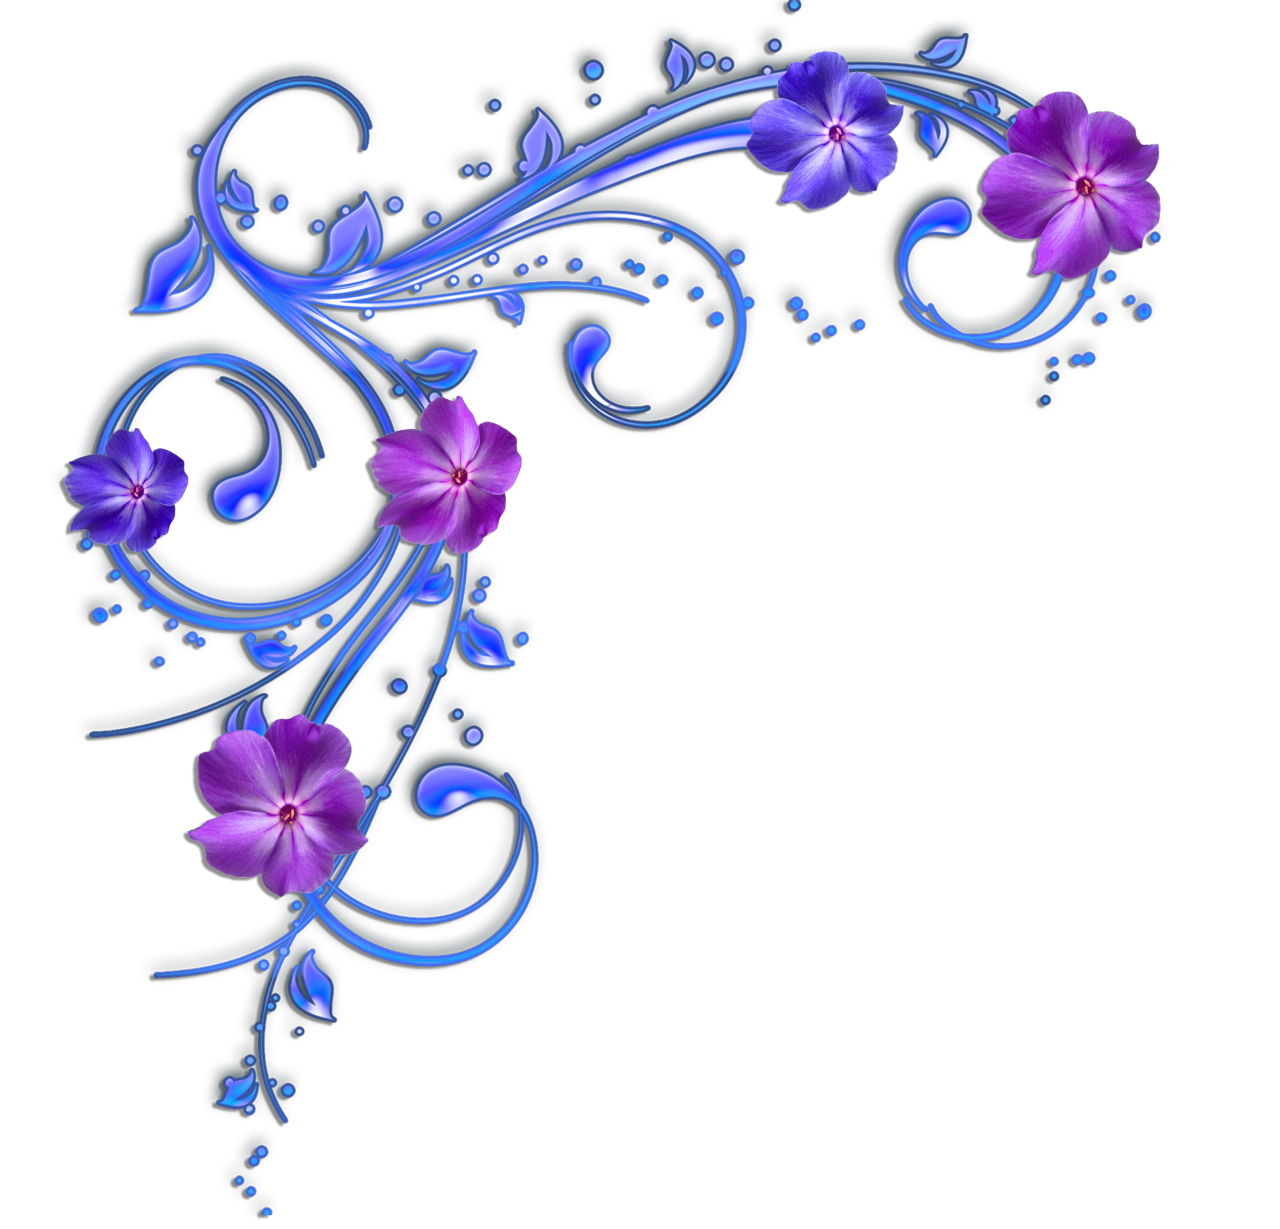 Image purple and blue. Fight clipart odious